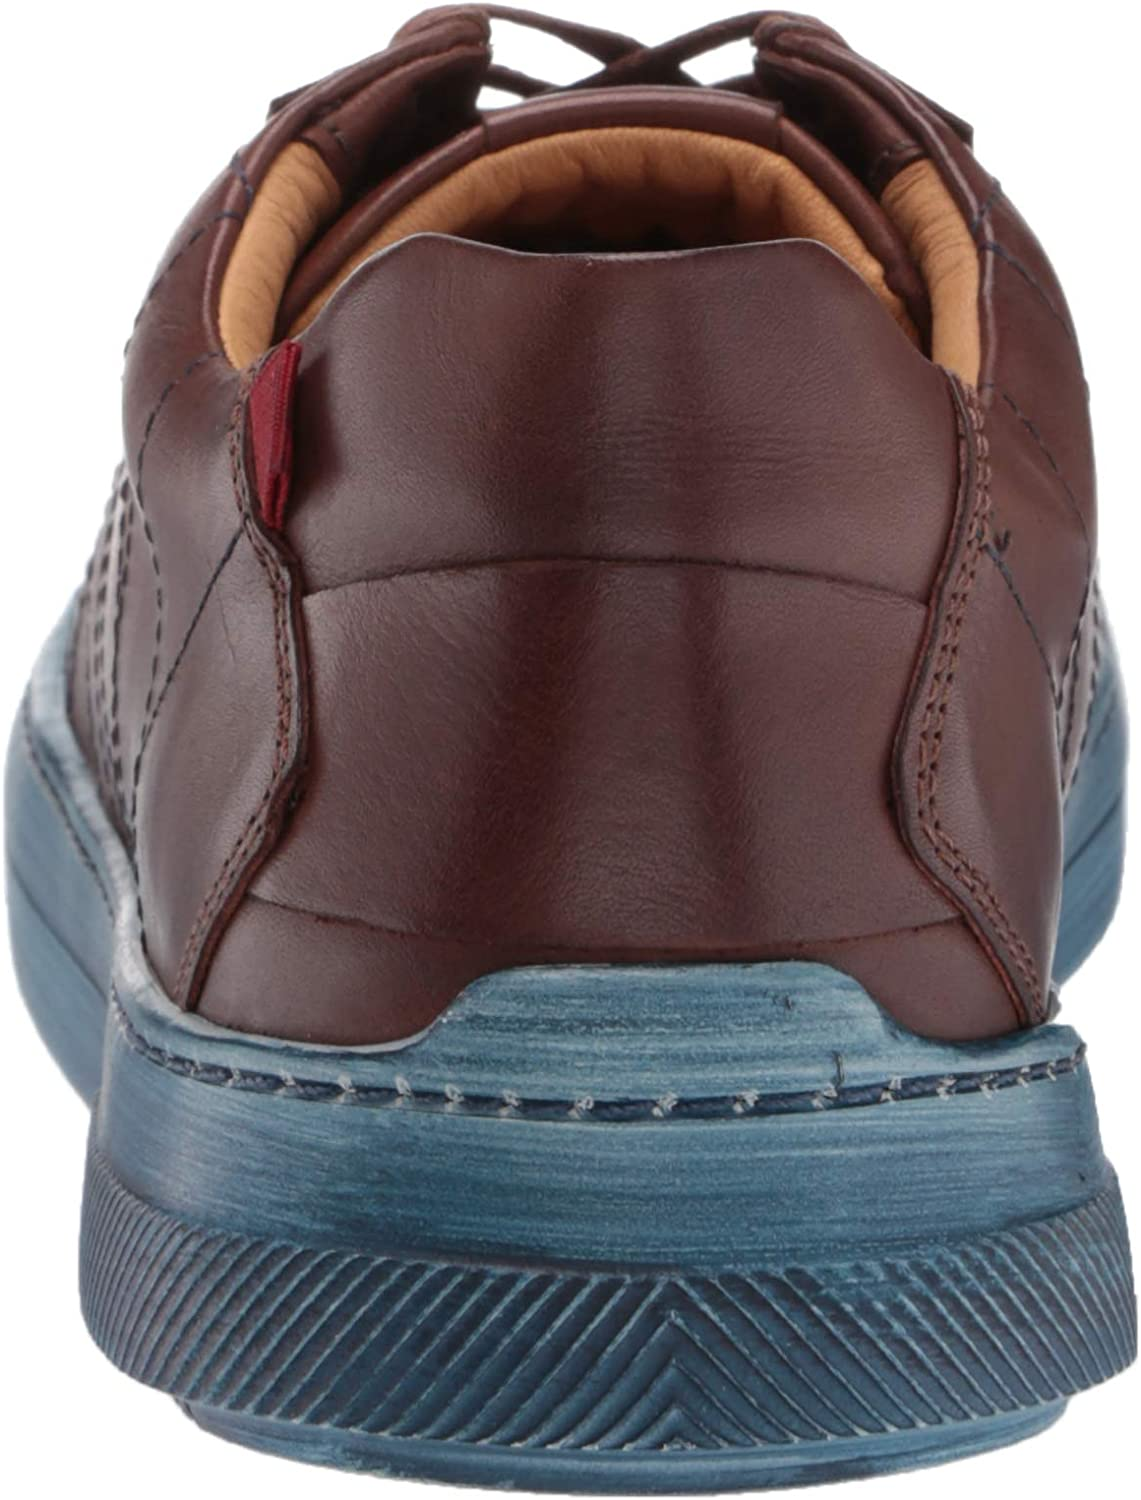 MARC JOSEPH NEW YORK Men's Leather Luxury Laceup Lightweight Technology Sneaker Cognac Nappa/Brushed Blue Sole